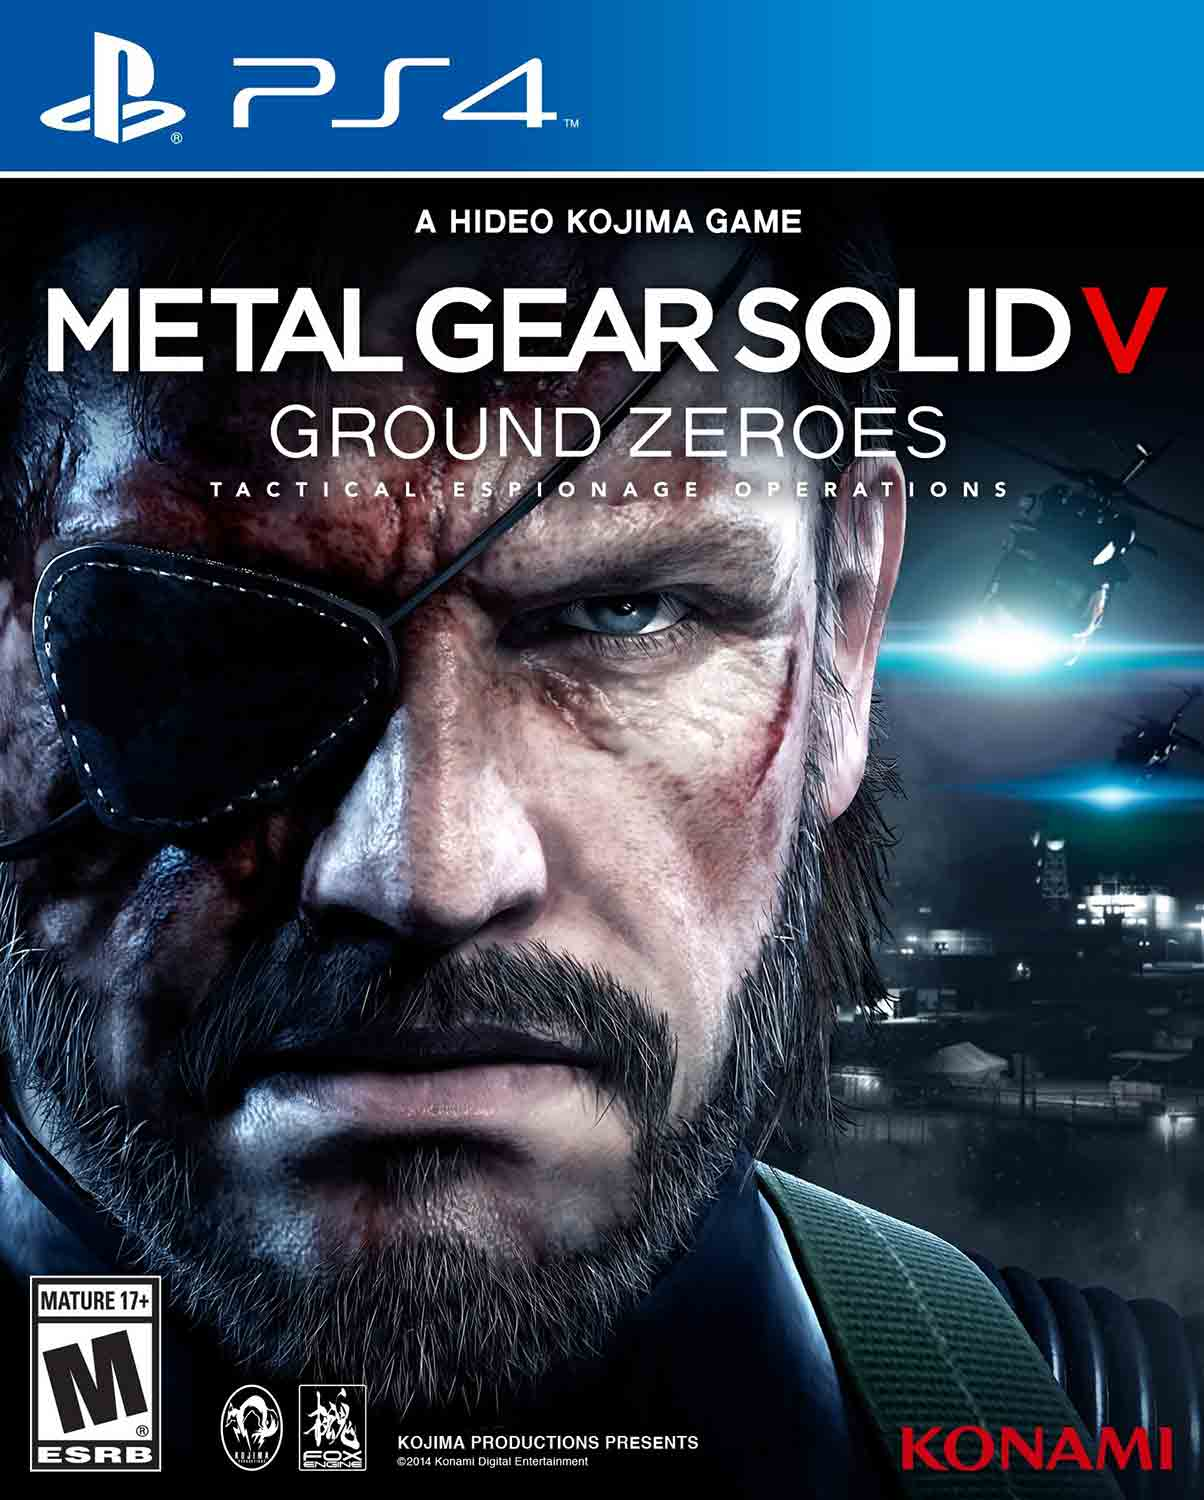 Metal Gear Solid V: Ground Zeroes pro PS4